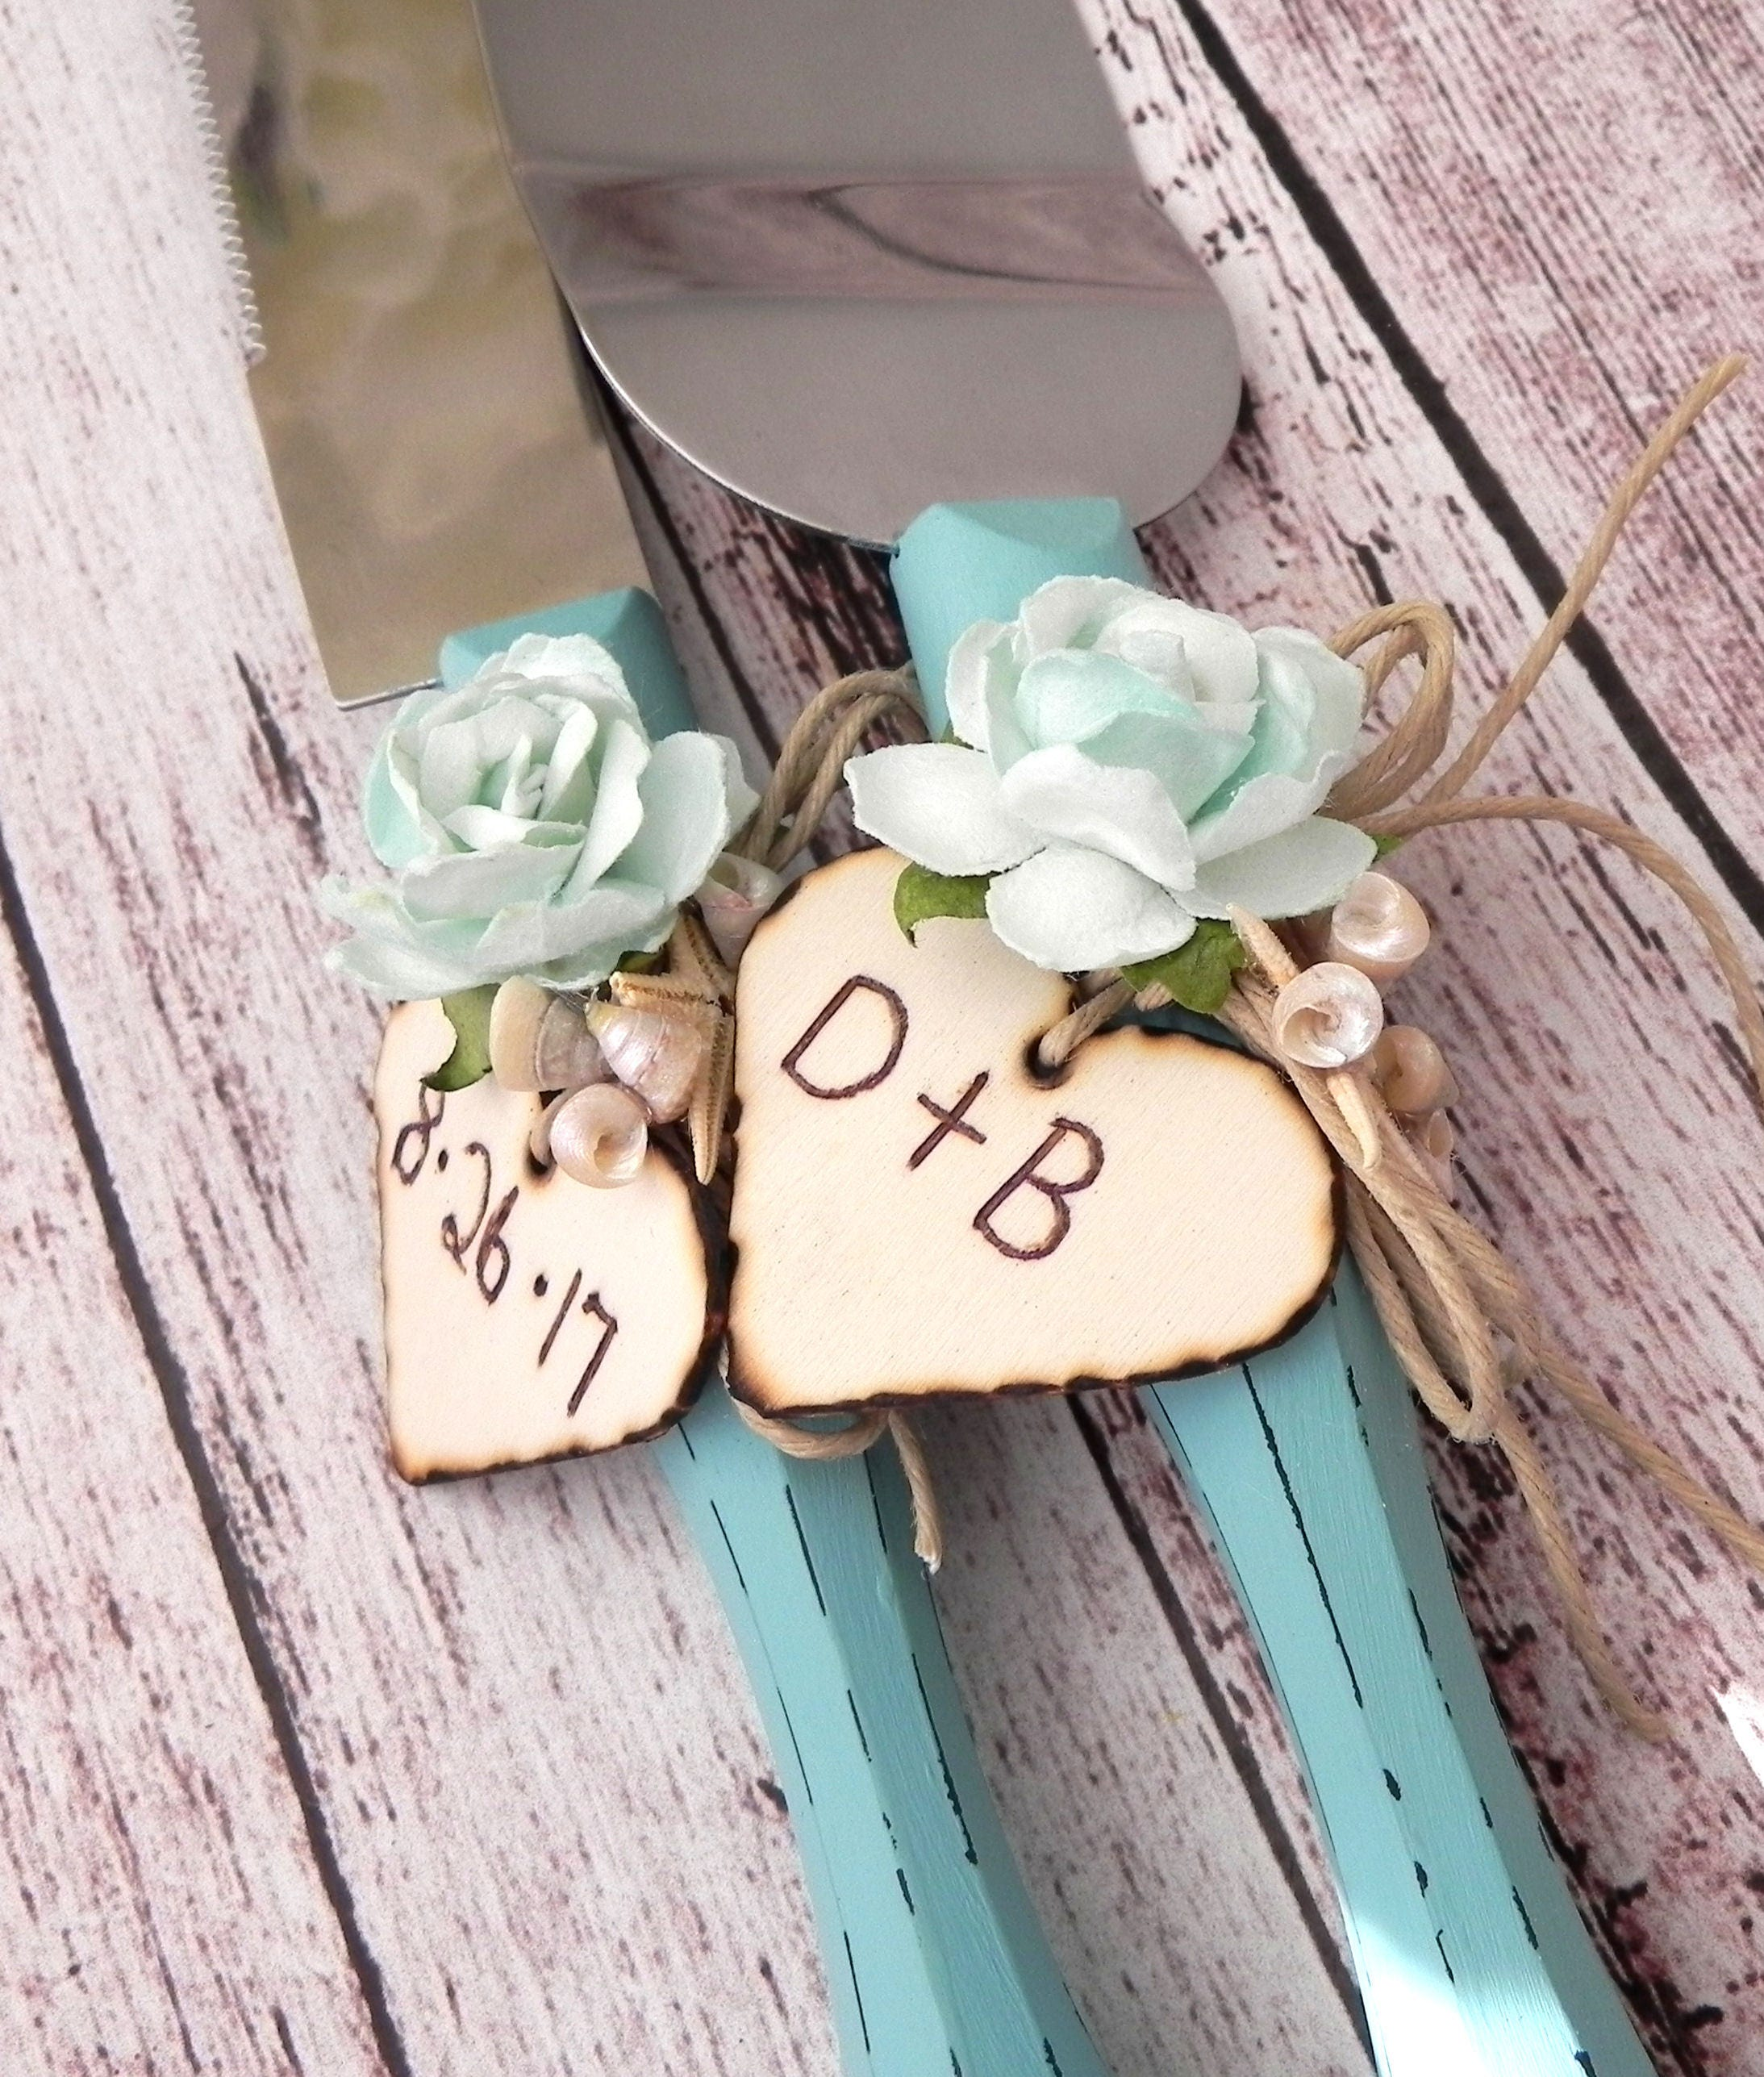 Aqua And Mint Wedding Cake Server And Knife Set With Personalized